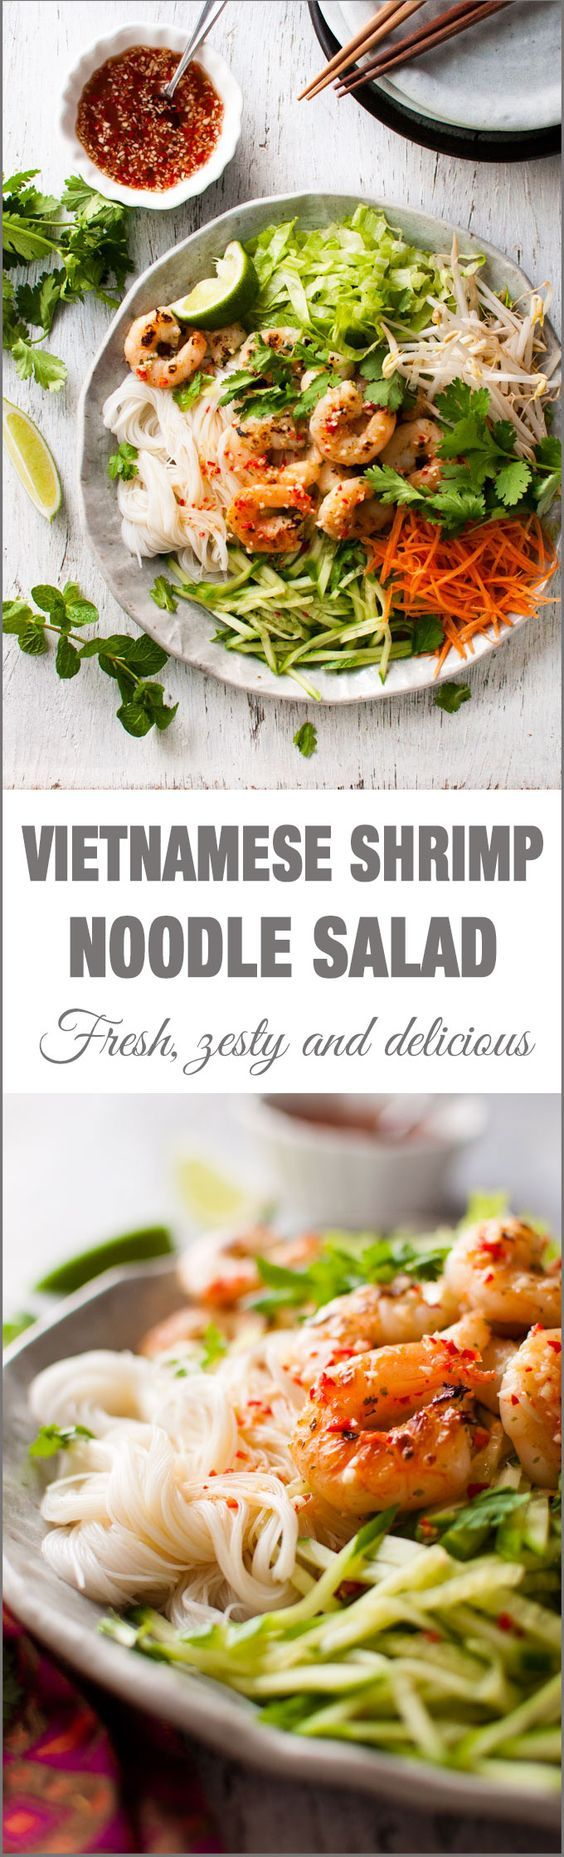 Vietnamese Shrimp Noodle Salad - lovely bright zesty flavours incredibly healthy fast to make and an awesome dressing.